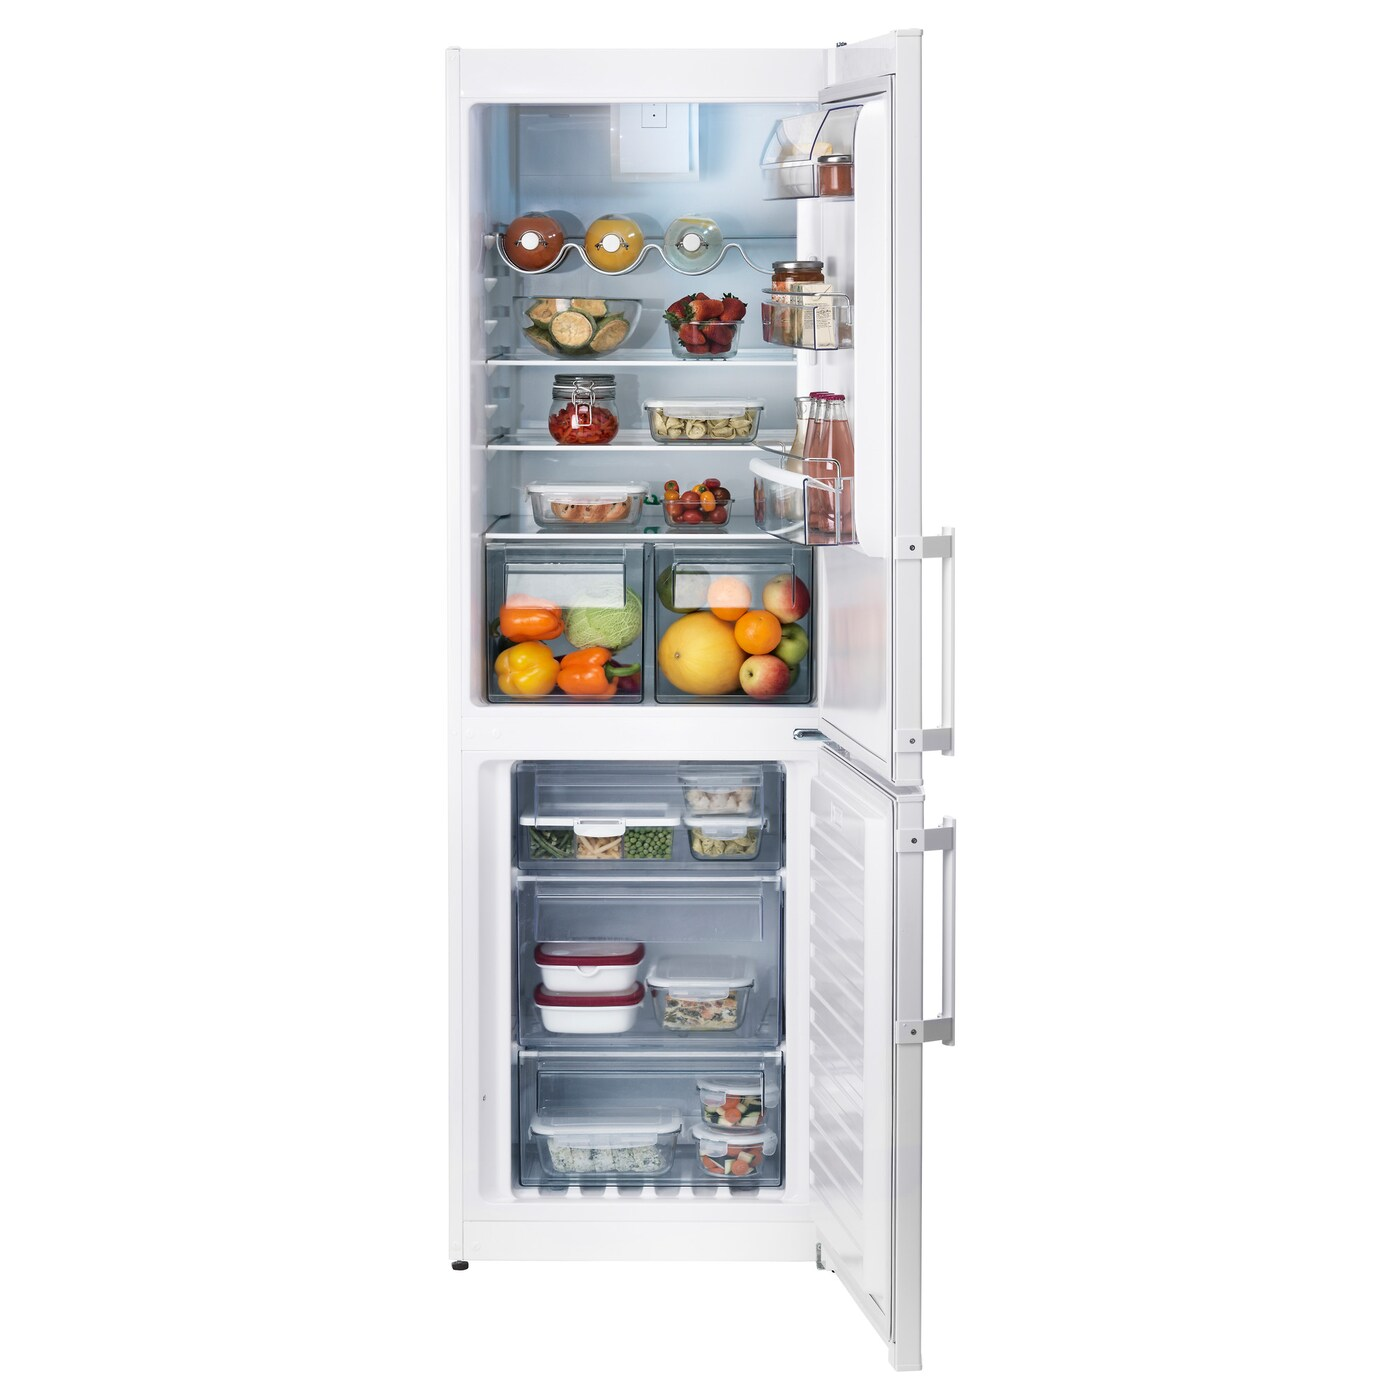 IKEA KYLD fridge/freezer A++ 5 year guarantee. Read about the terms in the guarantee brochure.